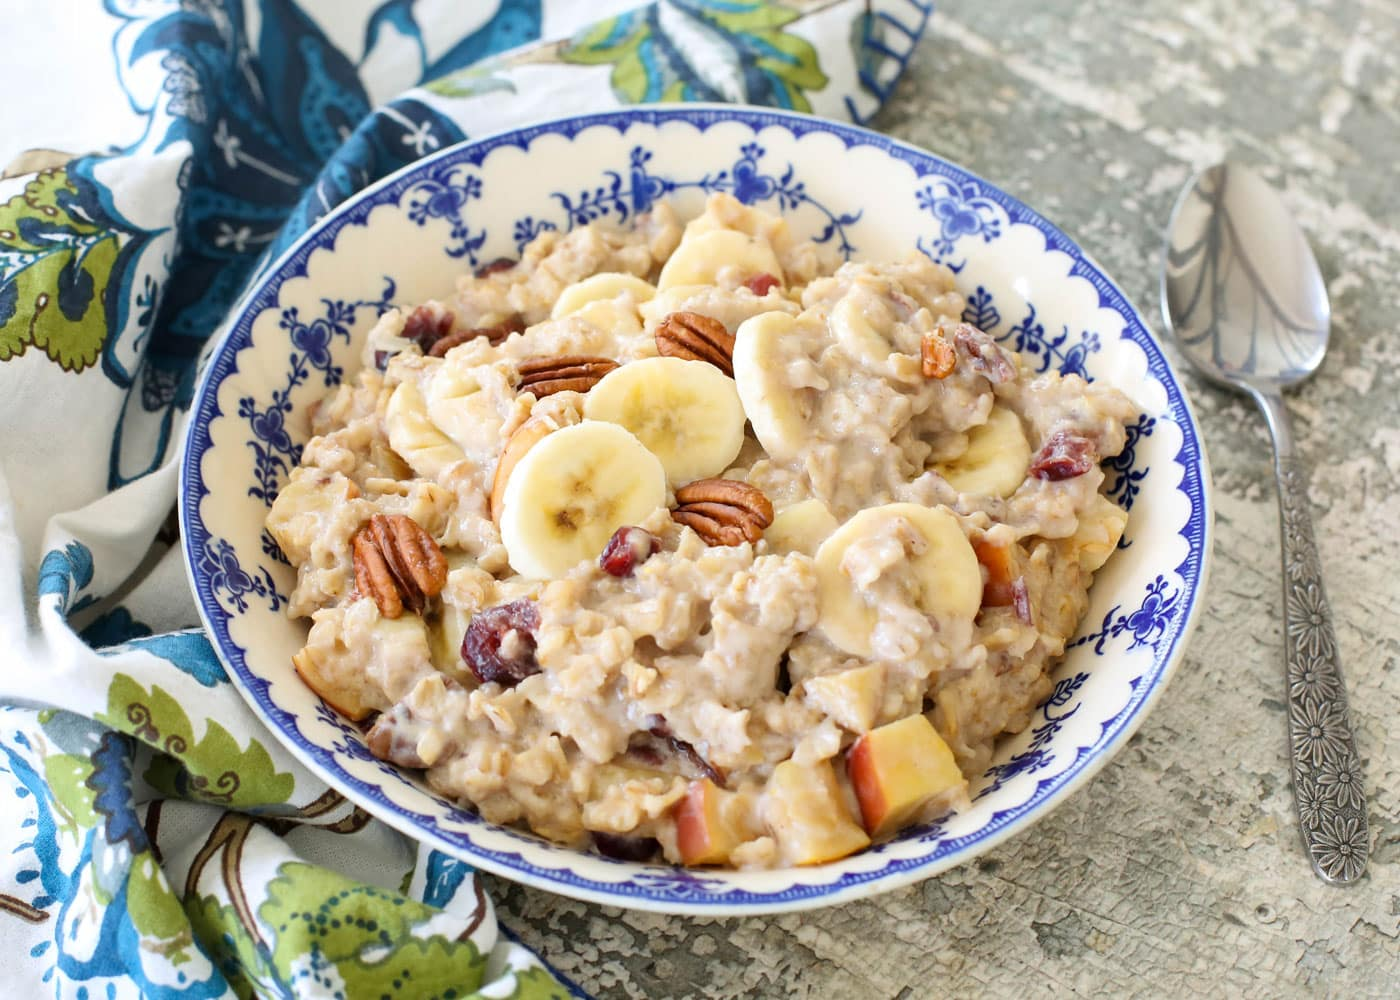 Food to prevent heart attack-Oatmeal